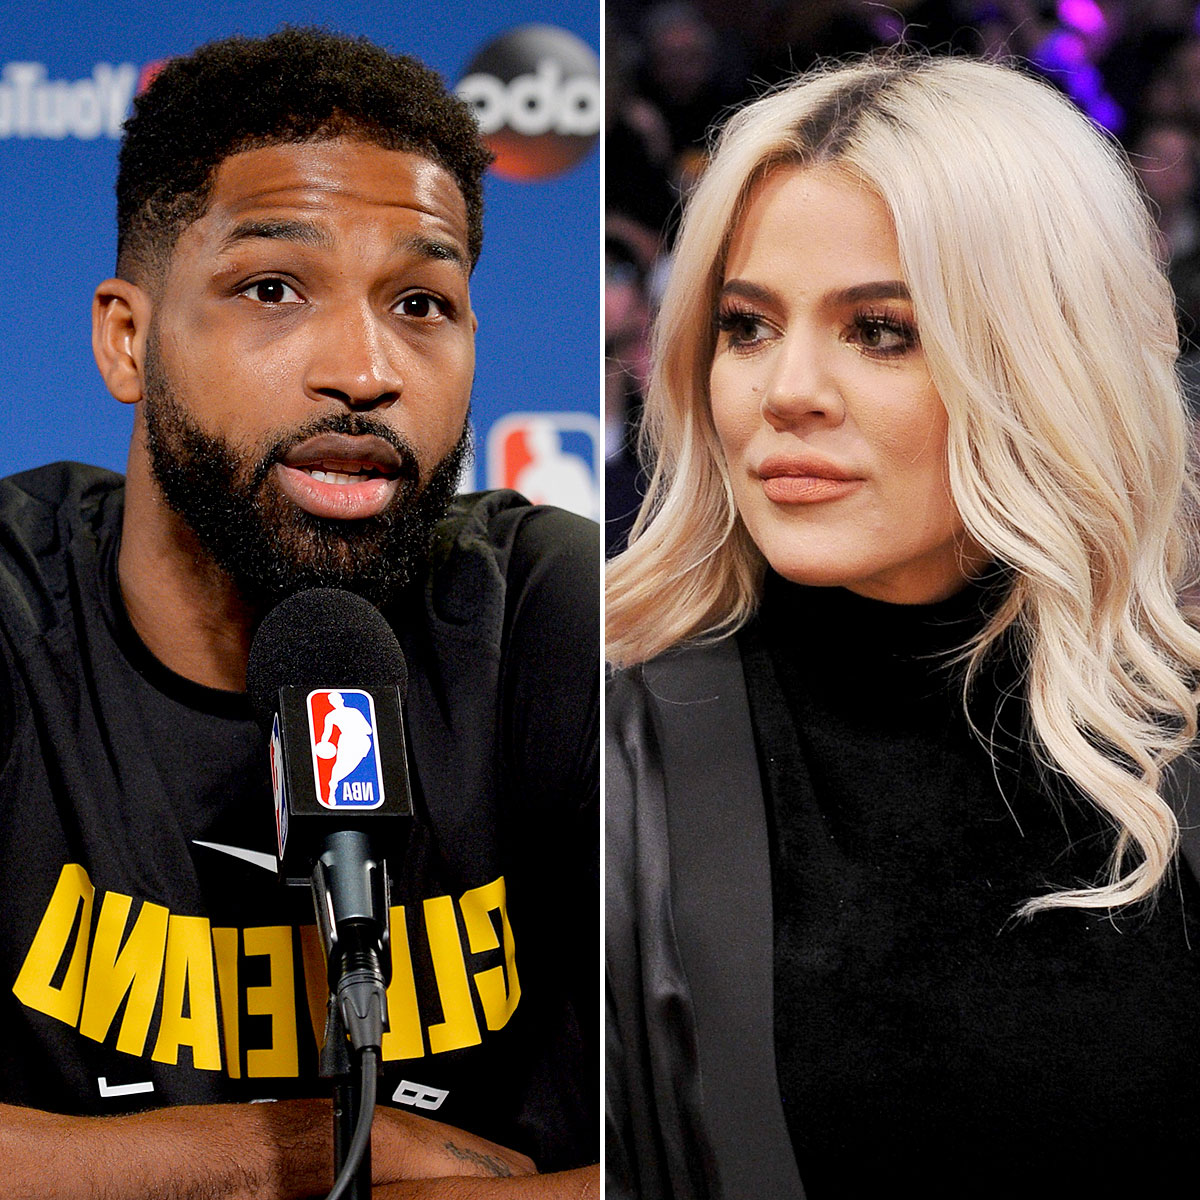 Tristan Thompson Hooking Up With Women Khloe Kardashian Split - Tristan Thompson and Khloe Kardashian.